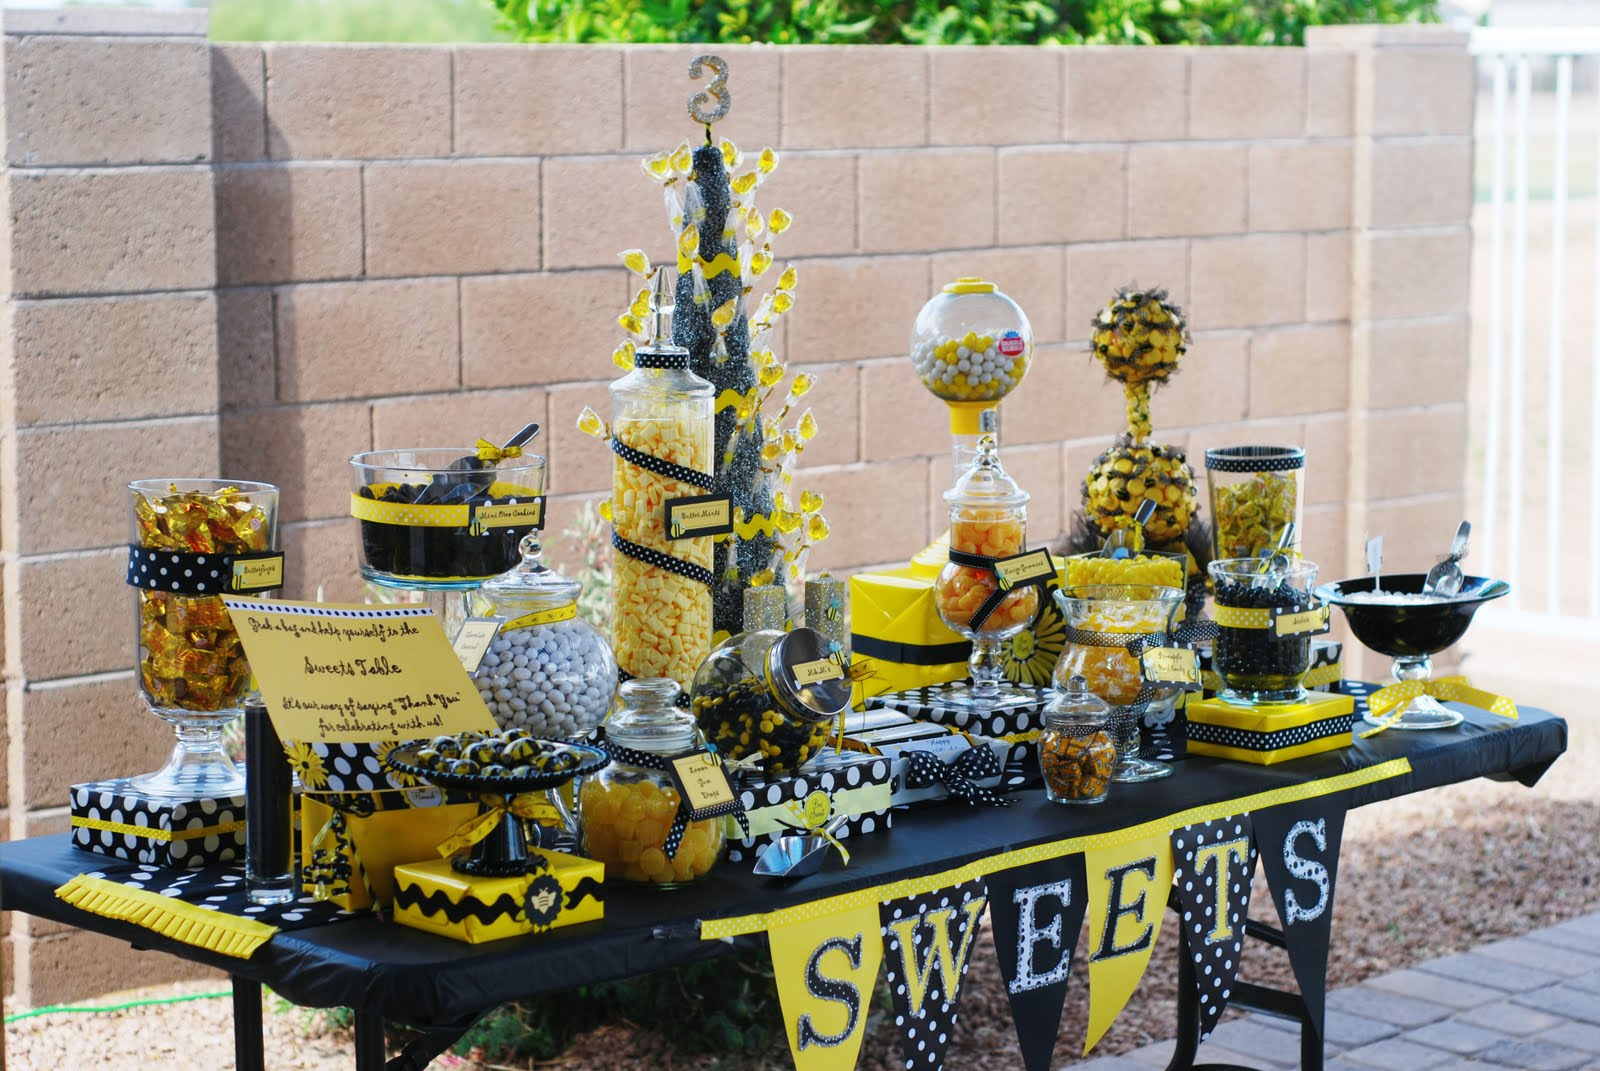 My Crafty Mom Made These Bumble Bee Centerpieces For All The Tables. She  Has Opened Her Own Etsy Store Now. You Can See It HERE.